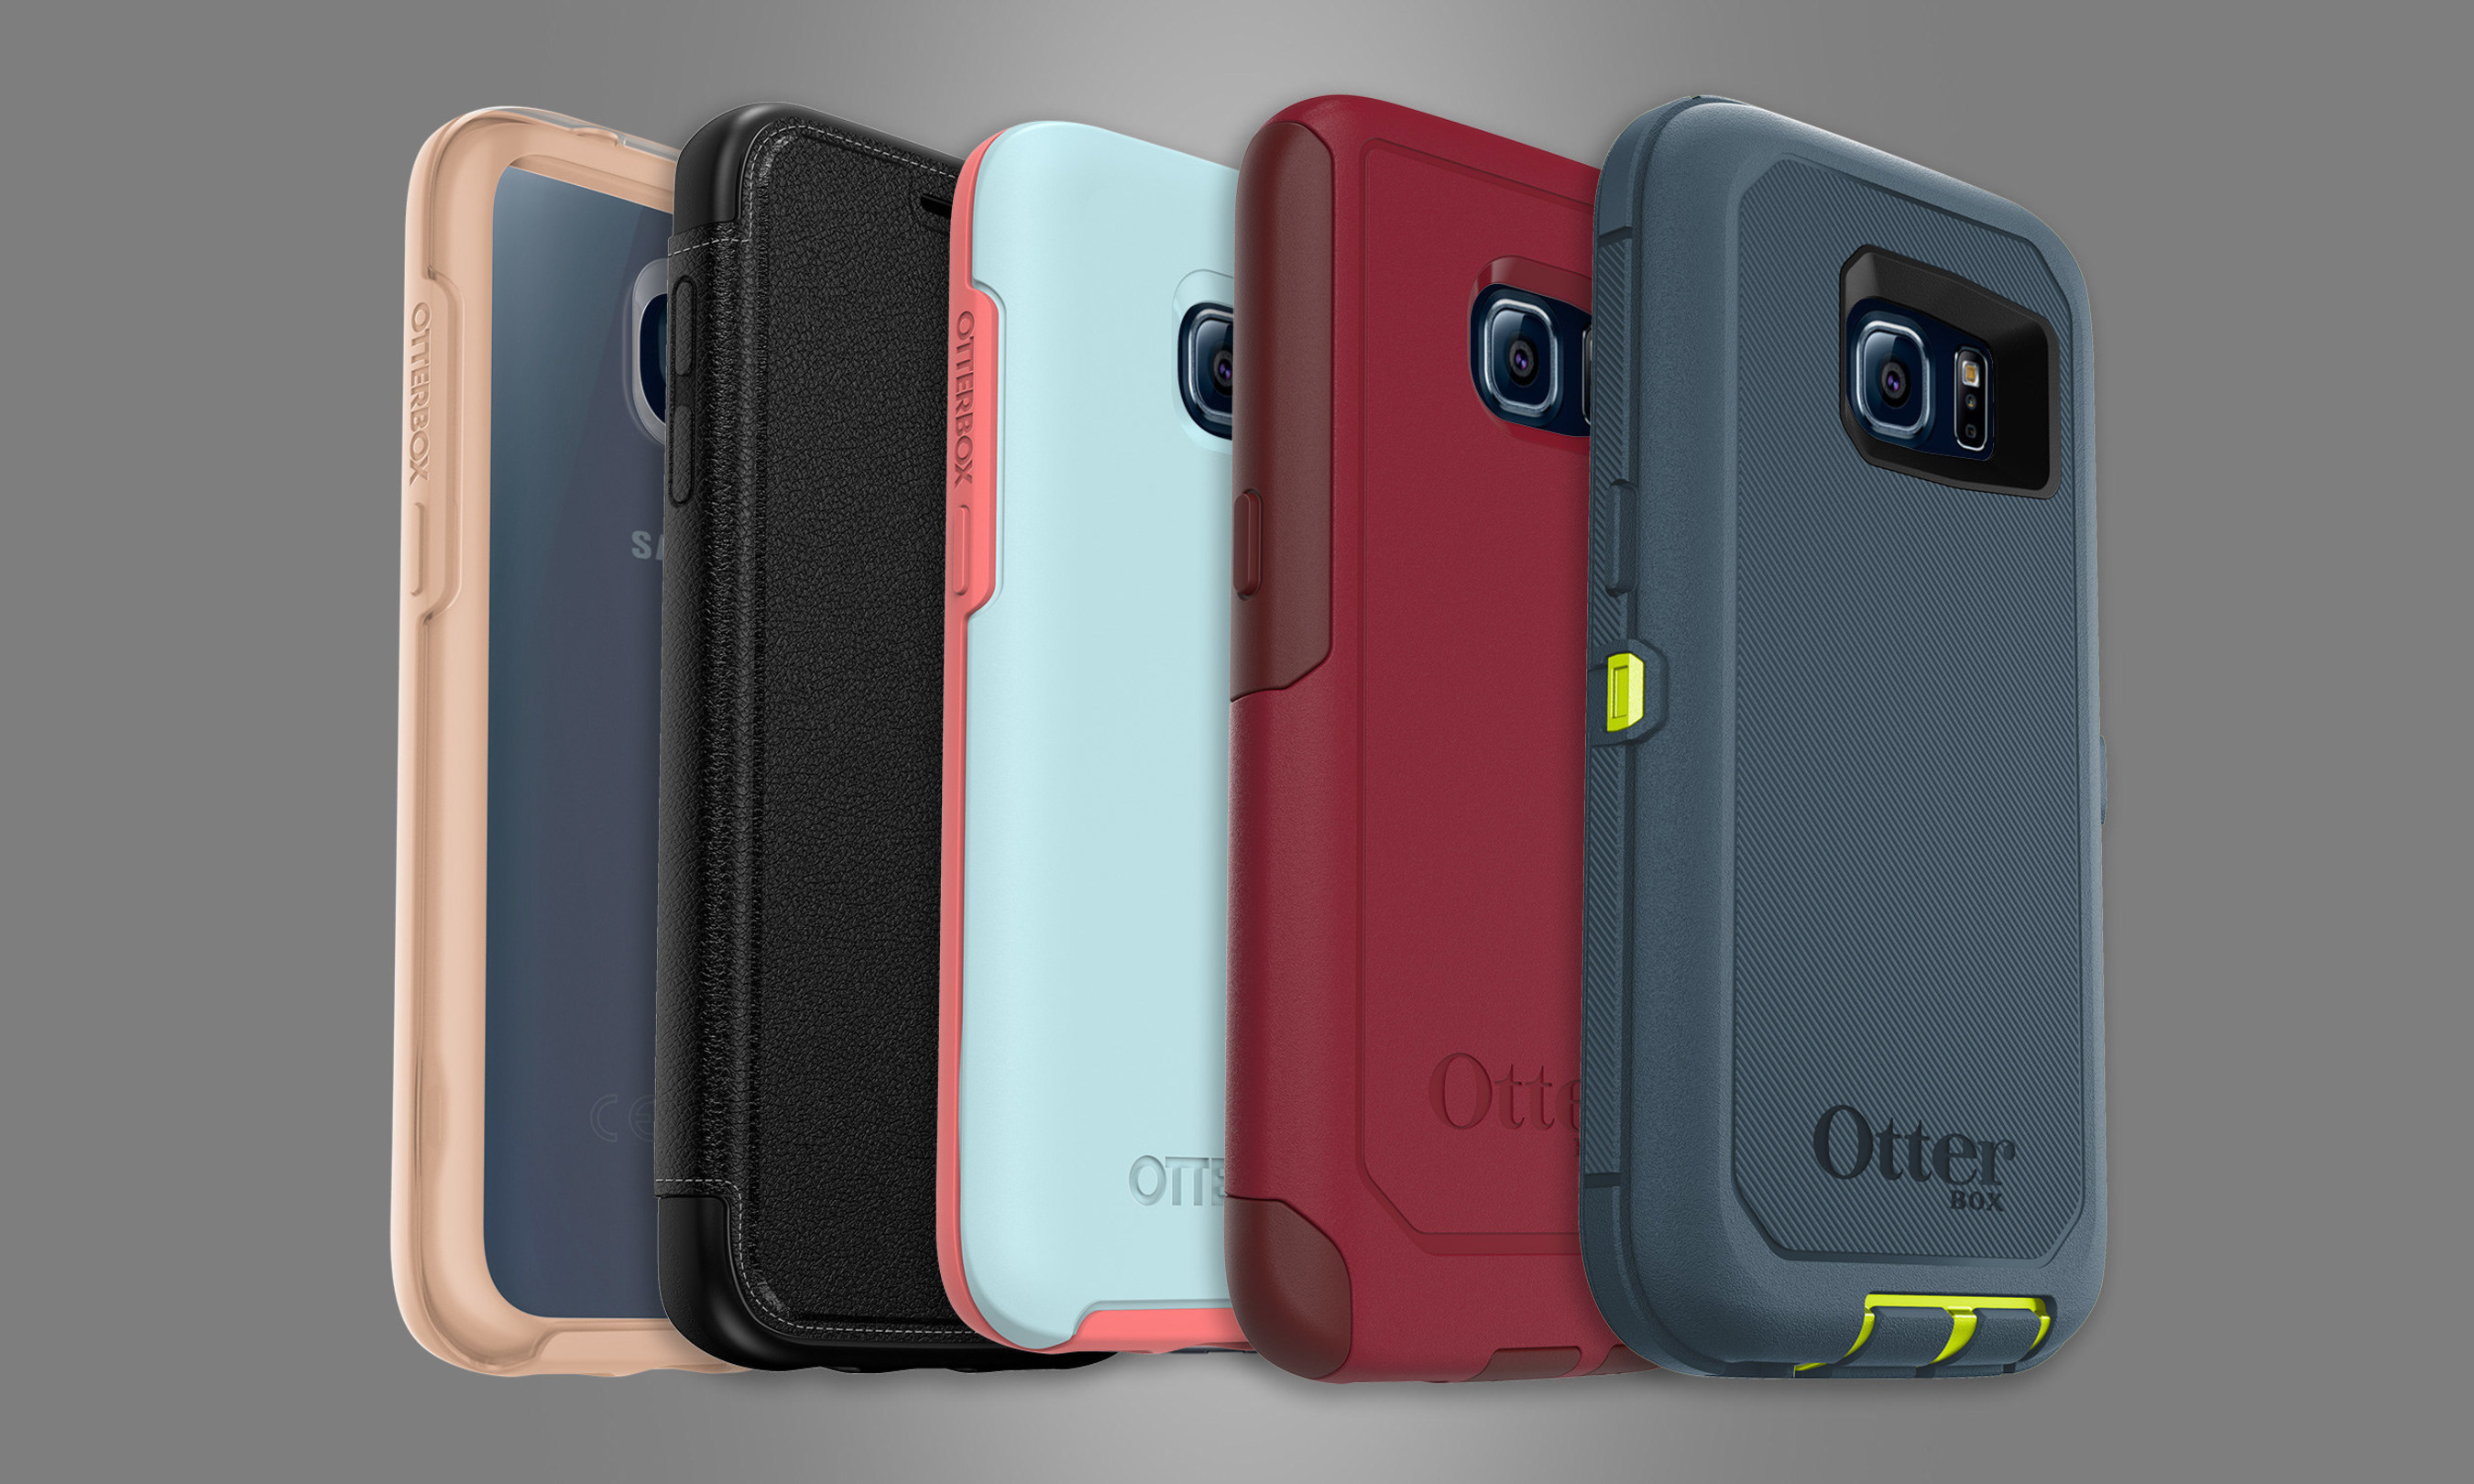 cheap for discount 771d0 6e6e8 Top Protection for GALAXY S7, GALAXY S7 edge: OtterBox Cases ...